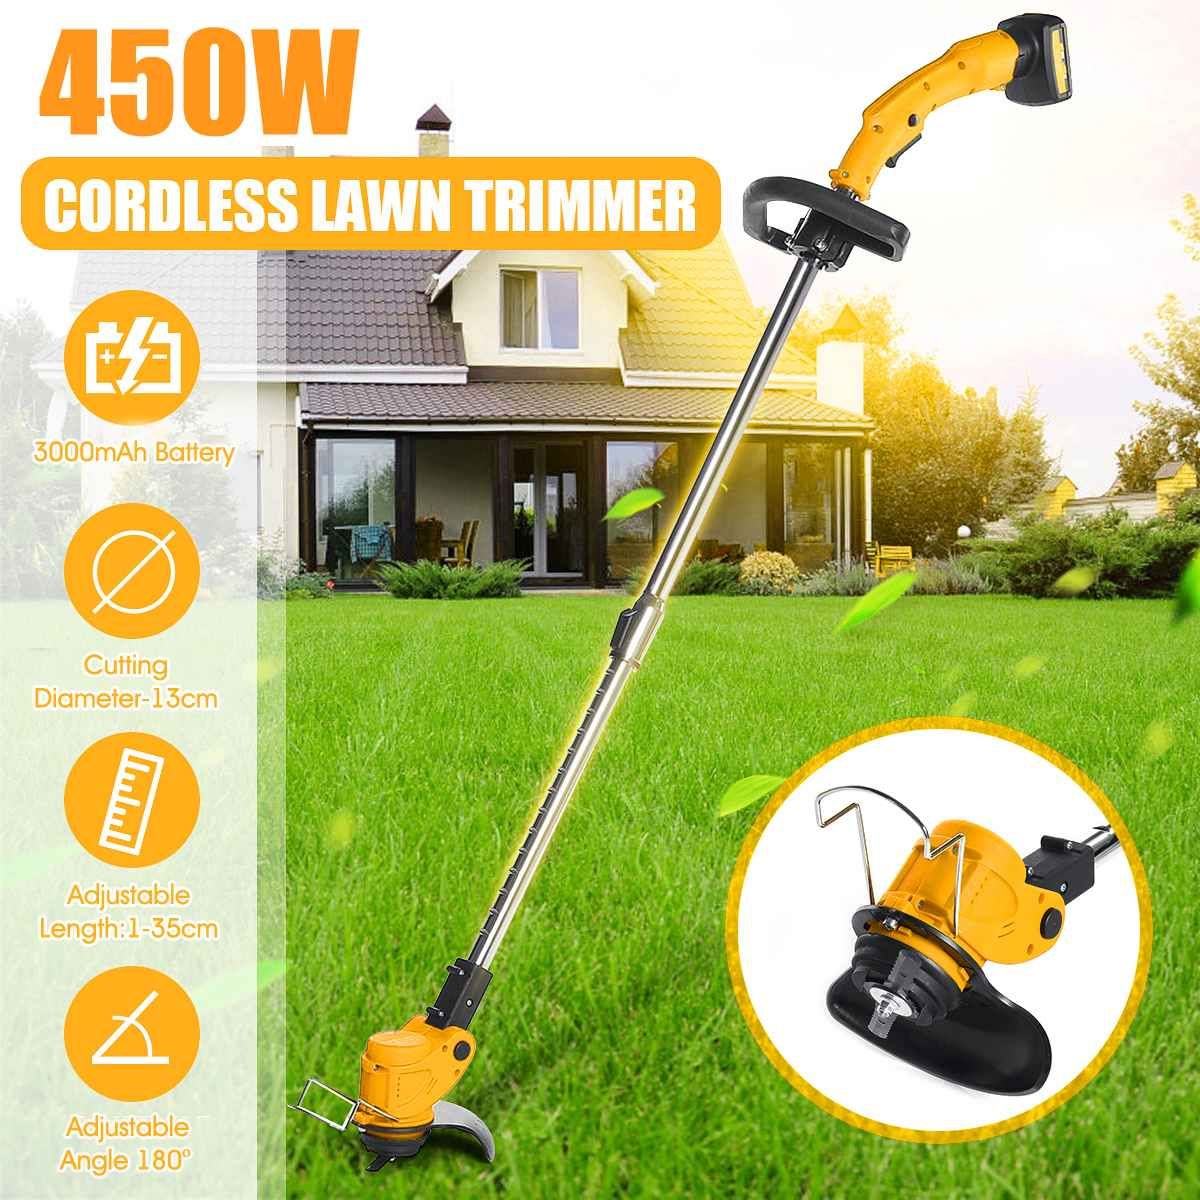 450W Garden Tools Brush Cutter Cordless String Lawn Electric Grass Trimmer Lawn Mower 26V With 2000mAh Lithium-ion Battery